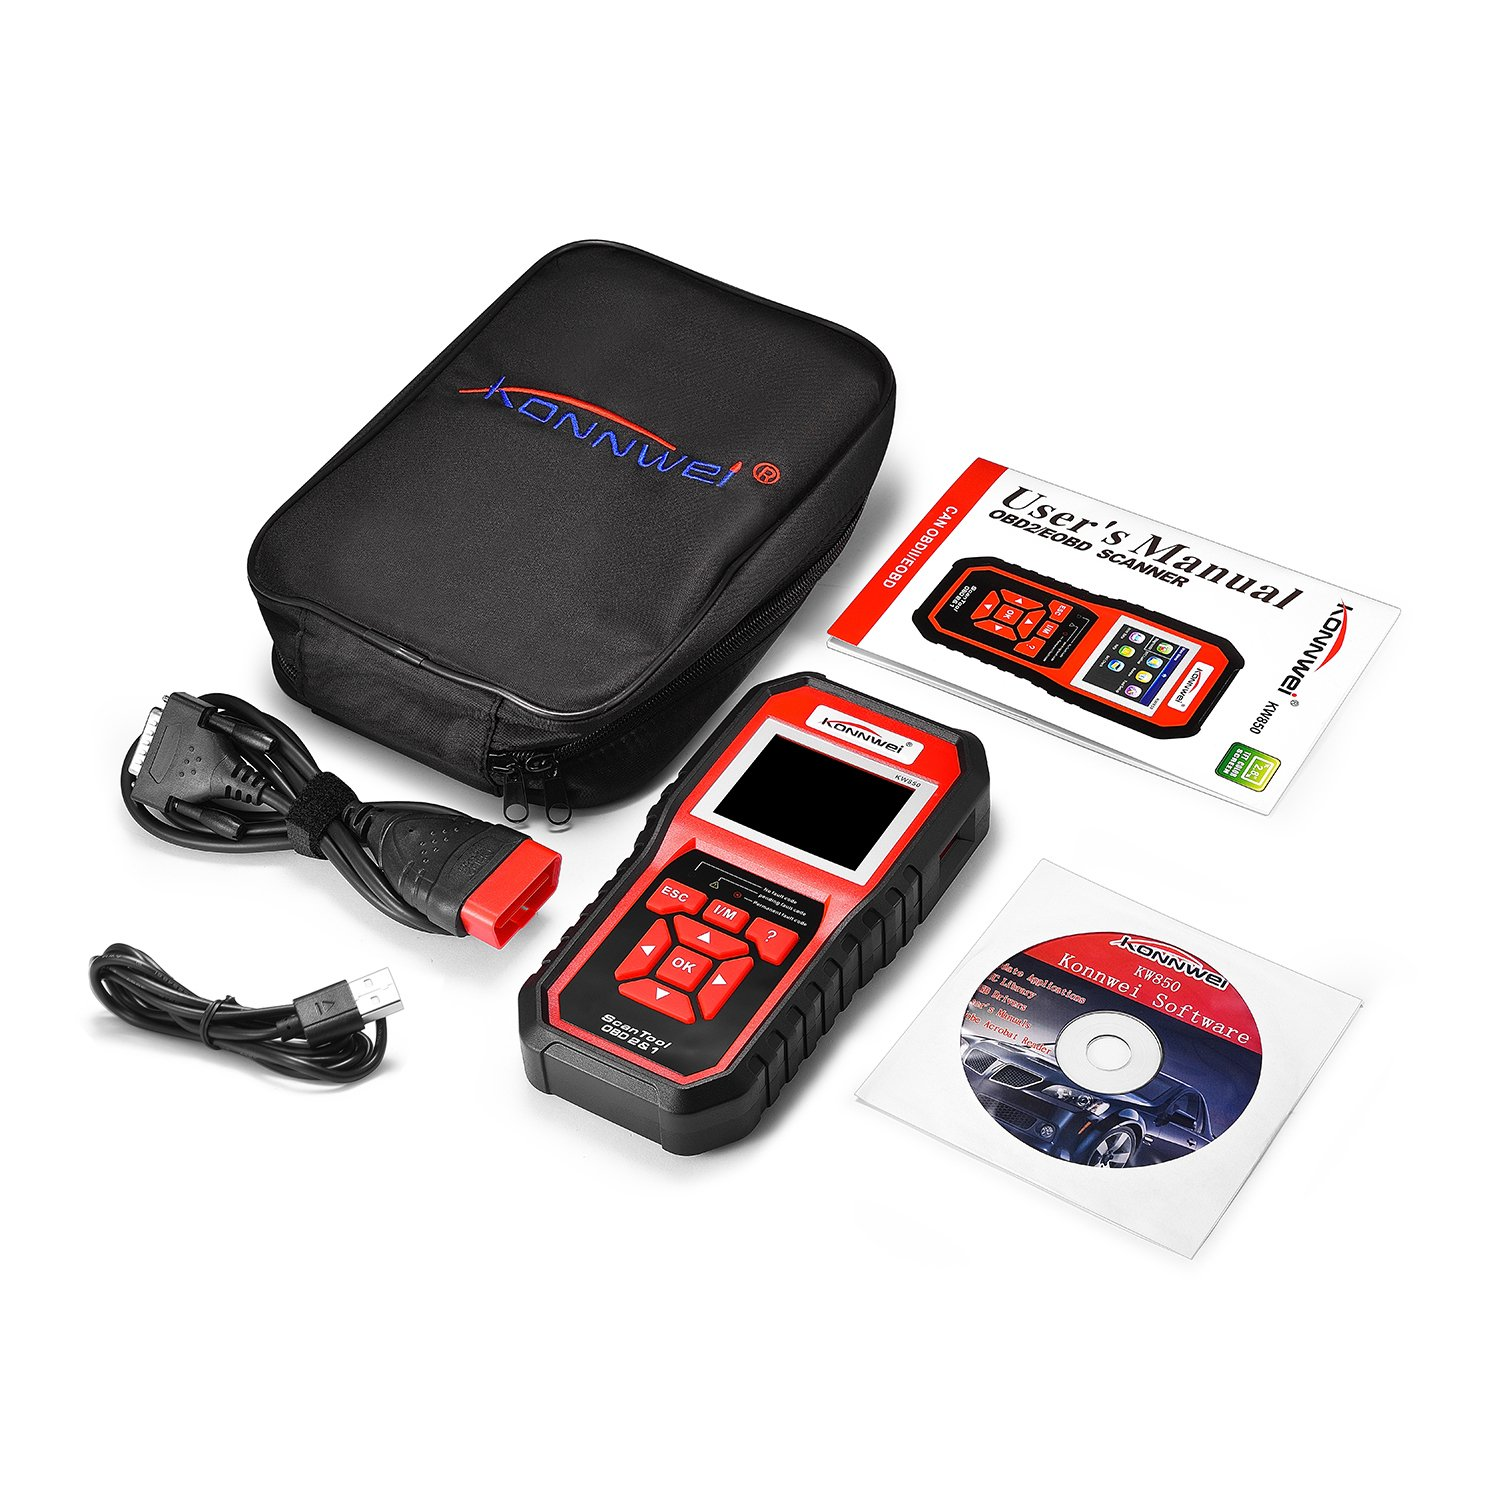 Areyourshop KW850 OBDII OBD2 Car Auto Truck TFT Colorful Display Diagnostic Scanner Tool